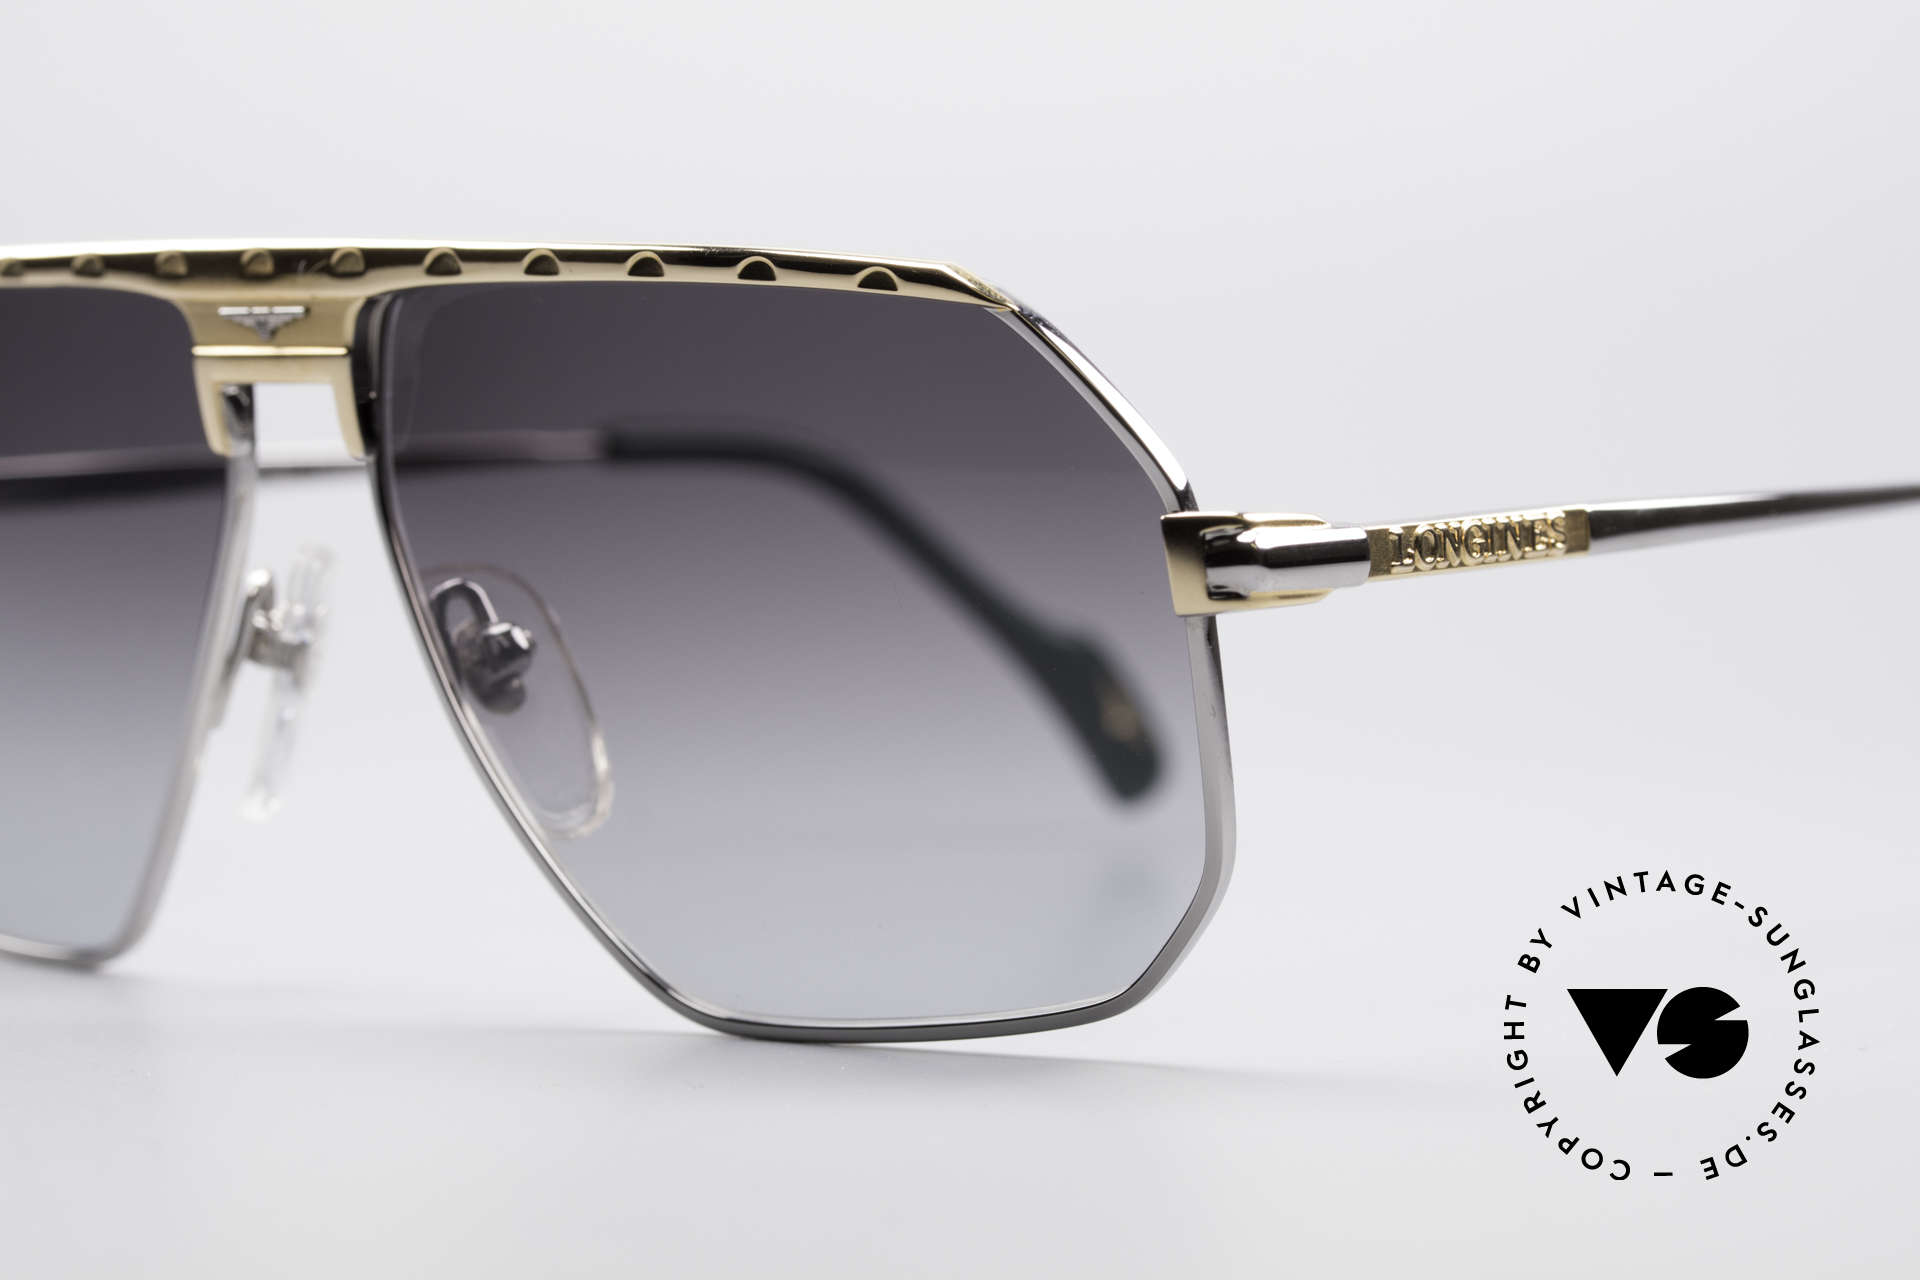 Longines 0152 Rare 80's Titanium Sunglasses, 'PURE TITANIUM' frame (lightweight & comfortable), Made for Men